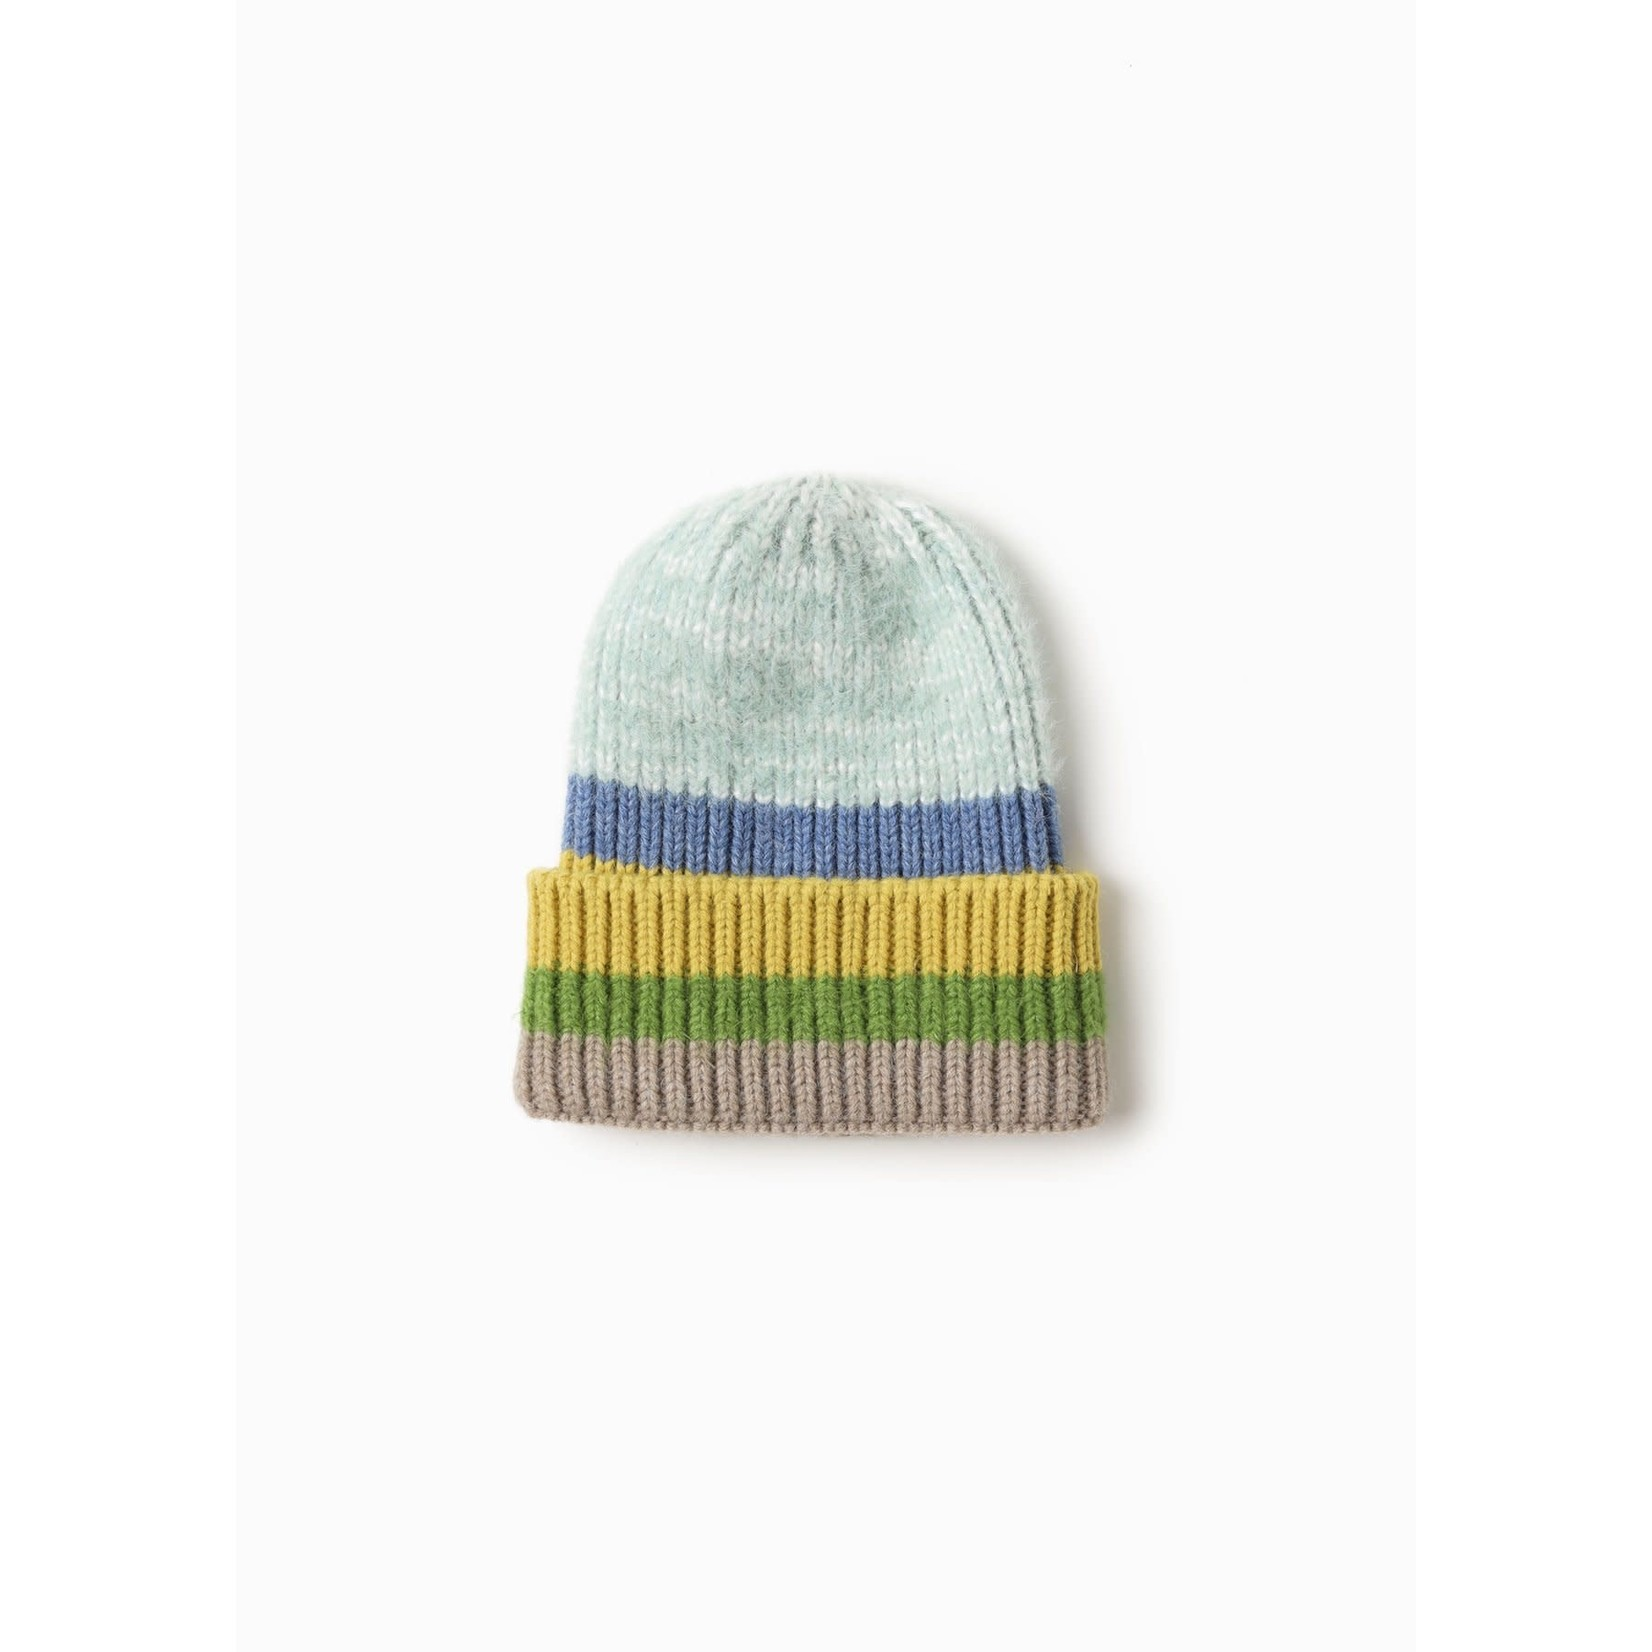 Cotton Candy Striped Beanie in Mint